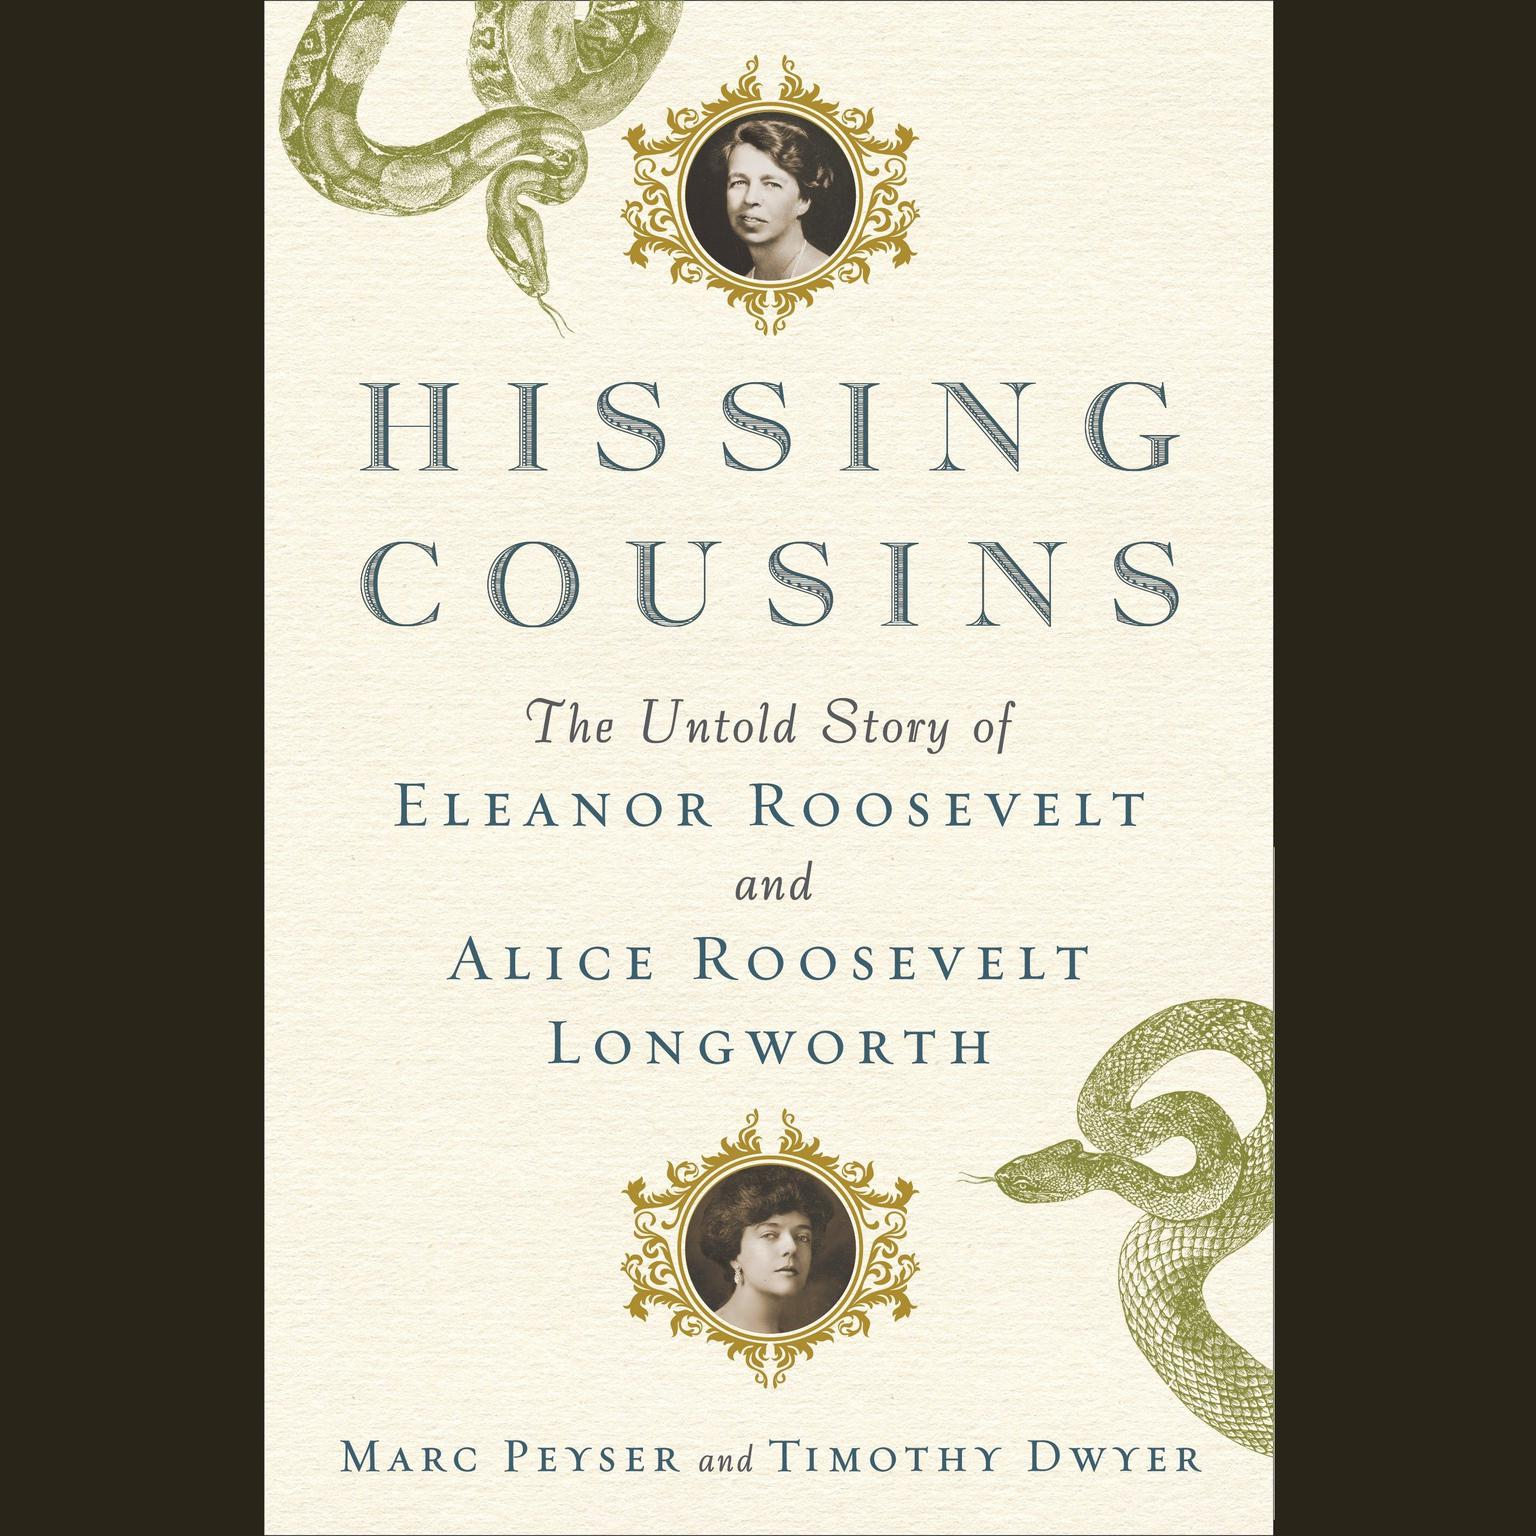 Printable Hissing Cousins: The Untold Story of Eleanor Roosevelt and Alice Roosevelt Longworth Audiobook Cover Art